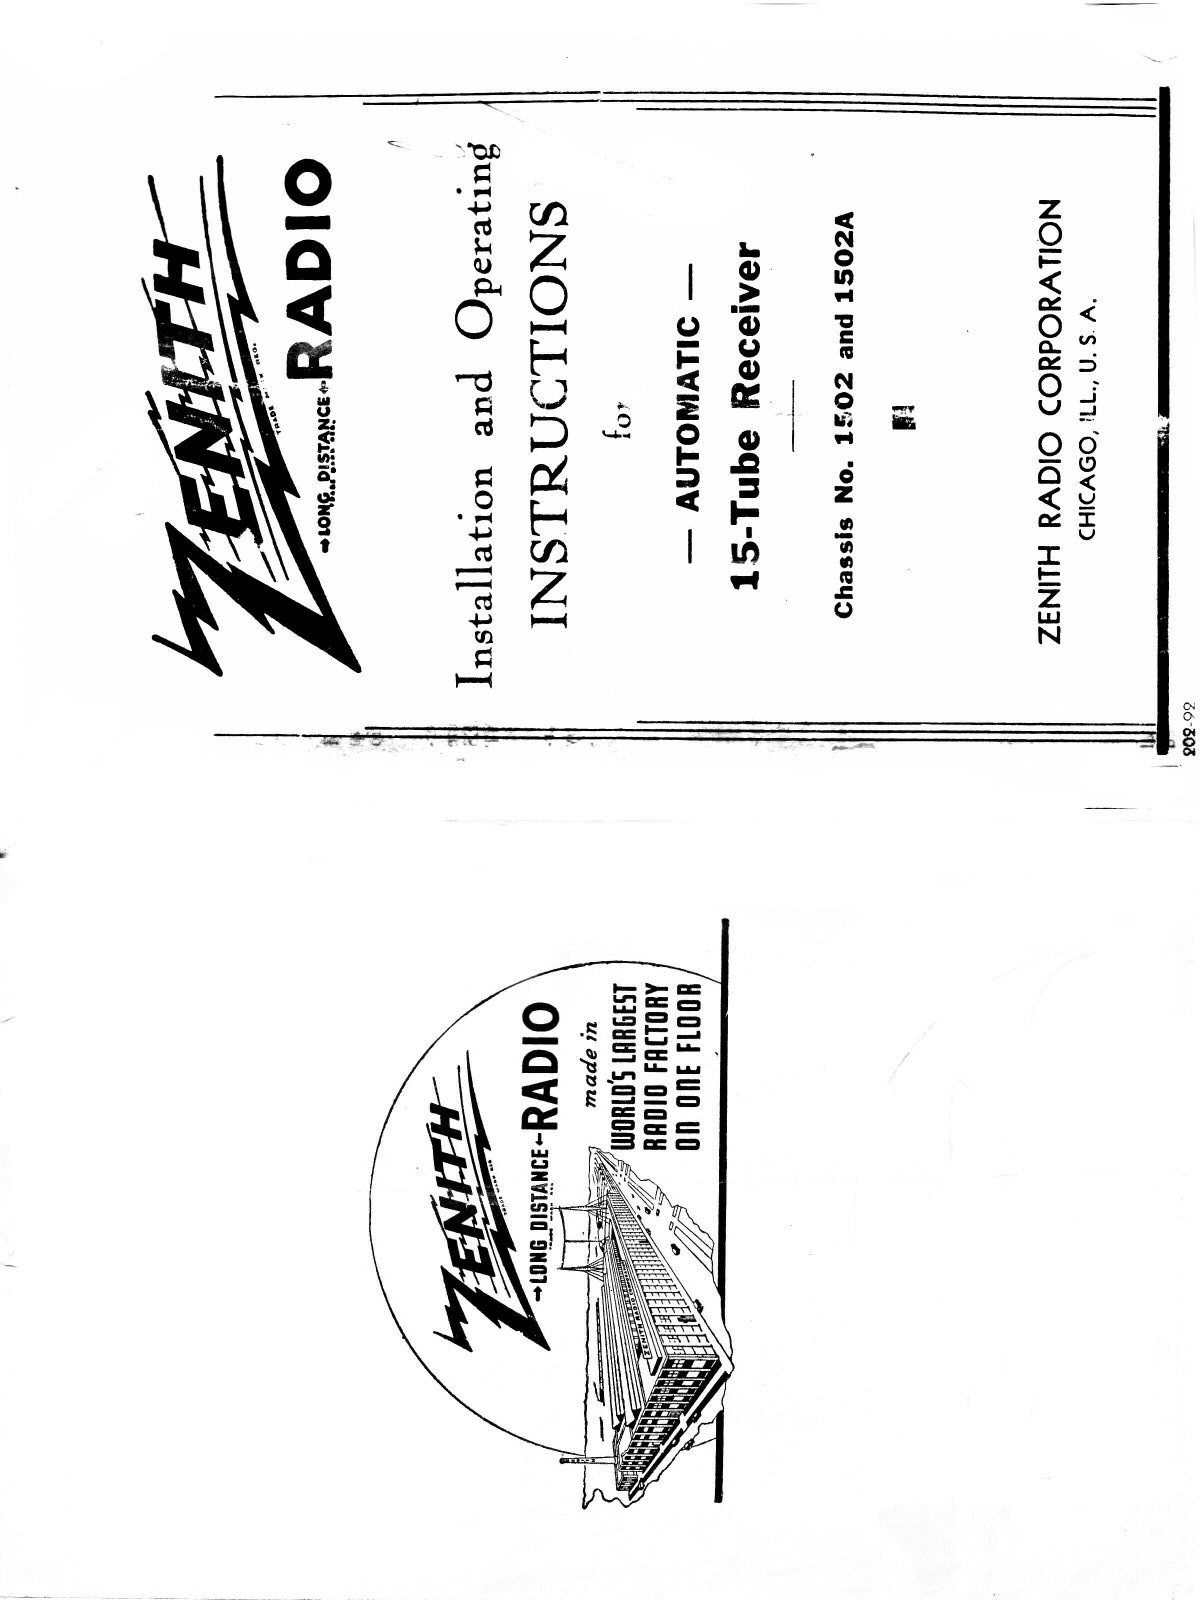 Zenith Chassis 1502 Owner's Manual